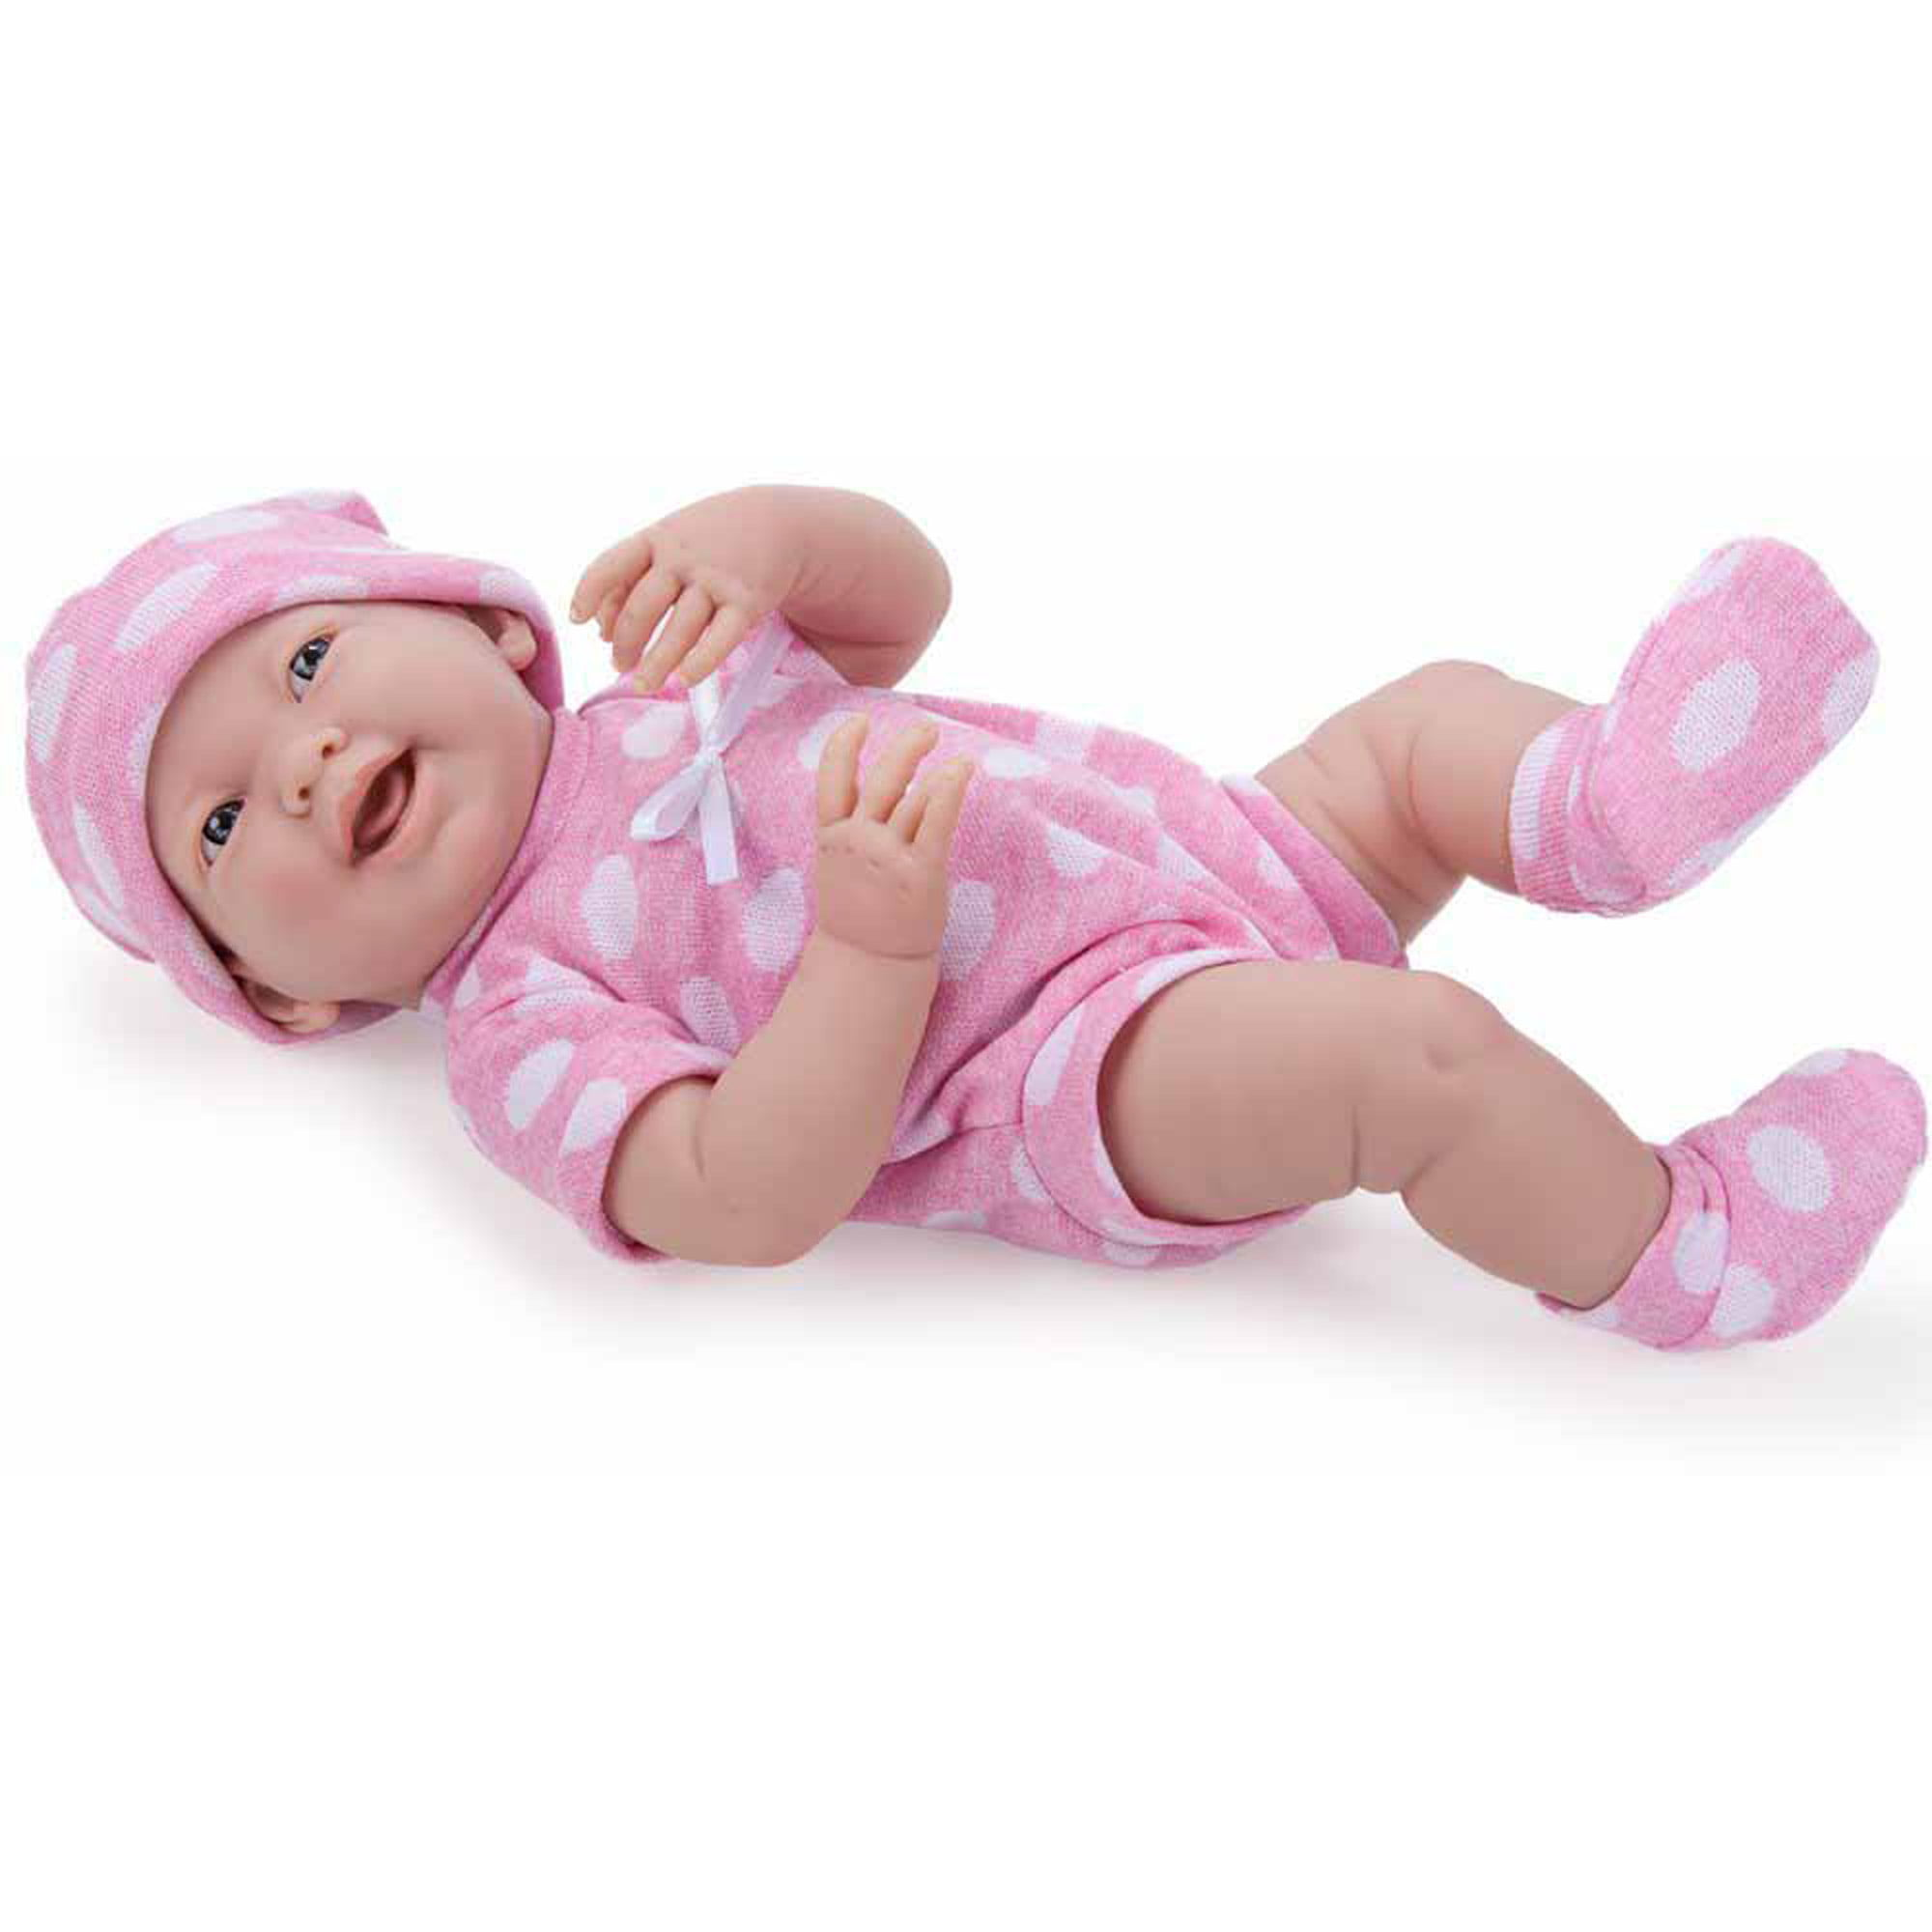 Baby Dolls Toy Fashions